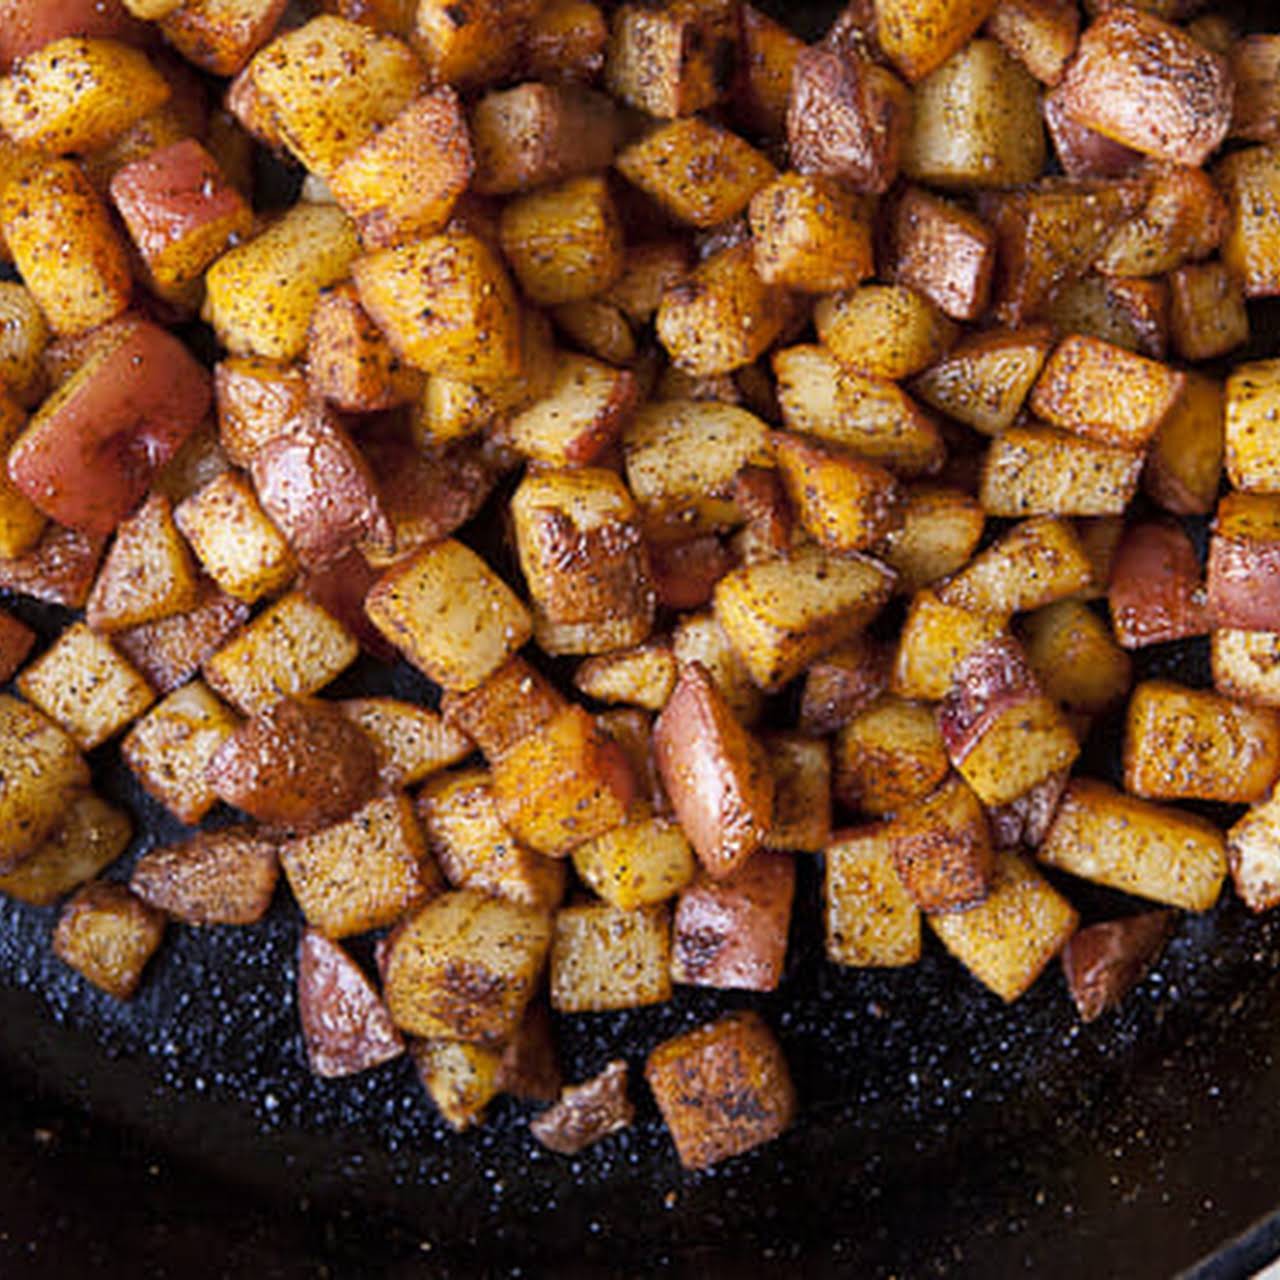 Home Fries at  estate